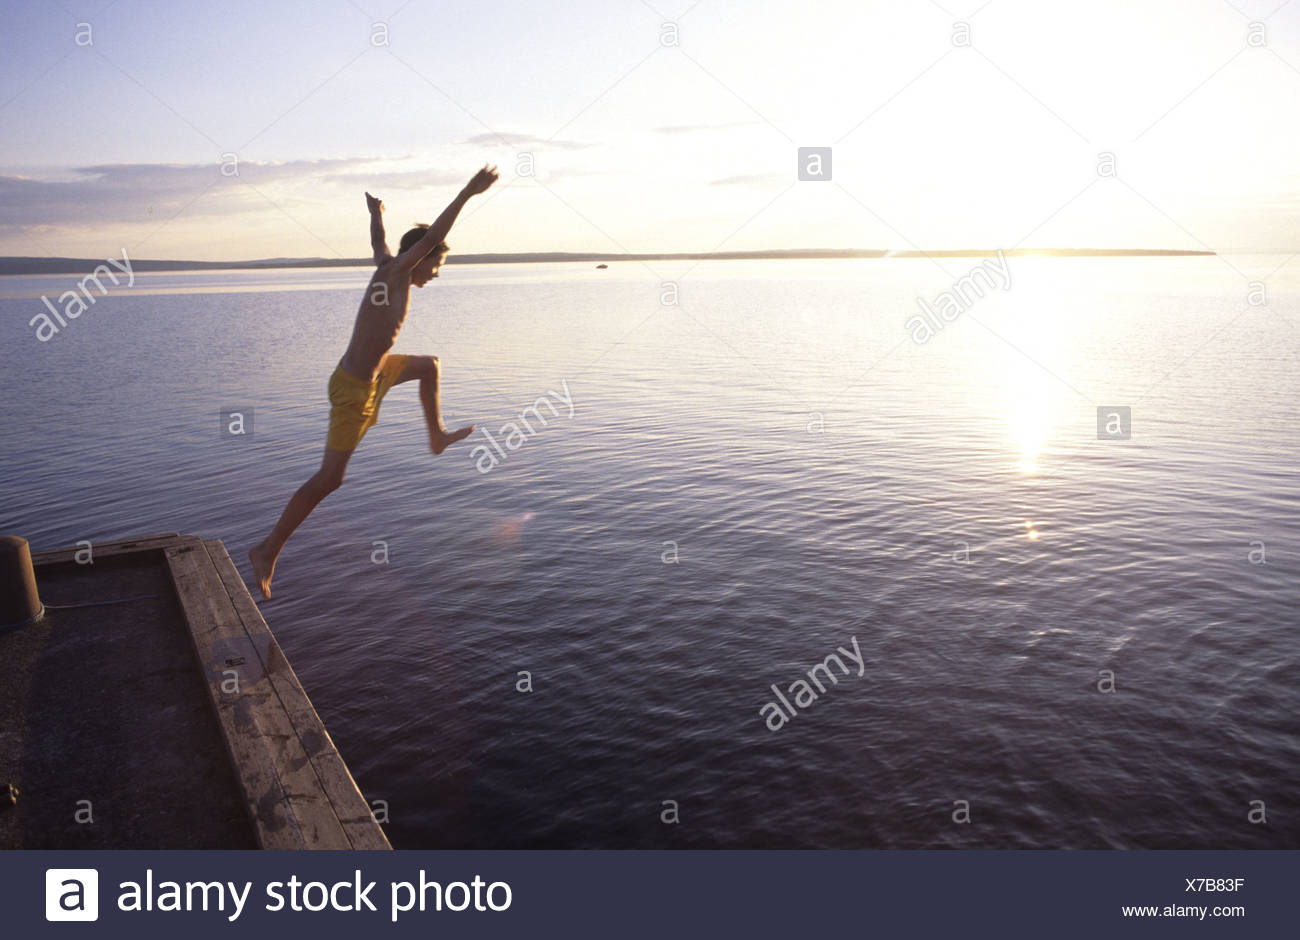 Boy jumping from at jetty - Stock Image